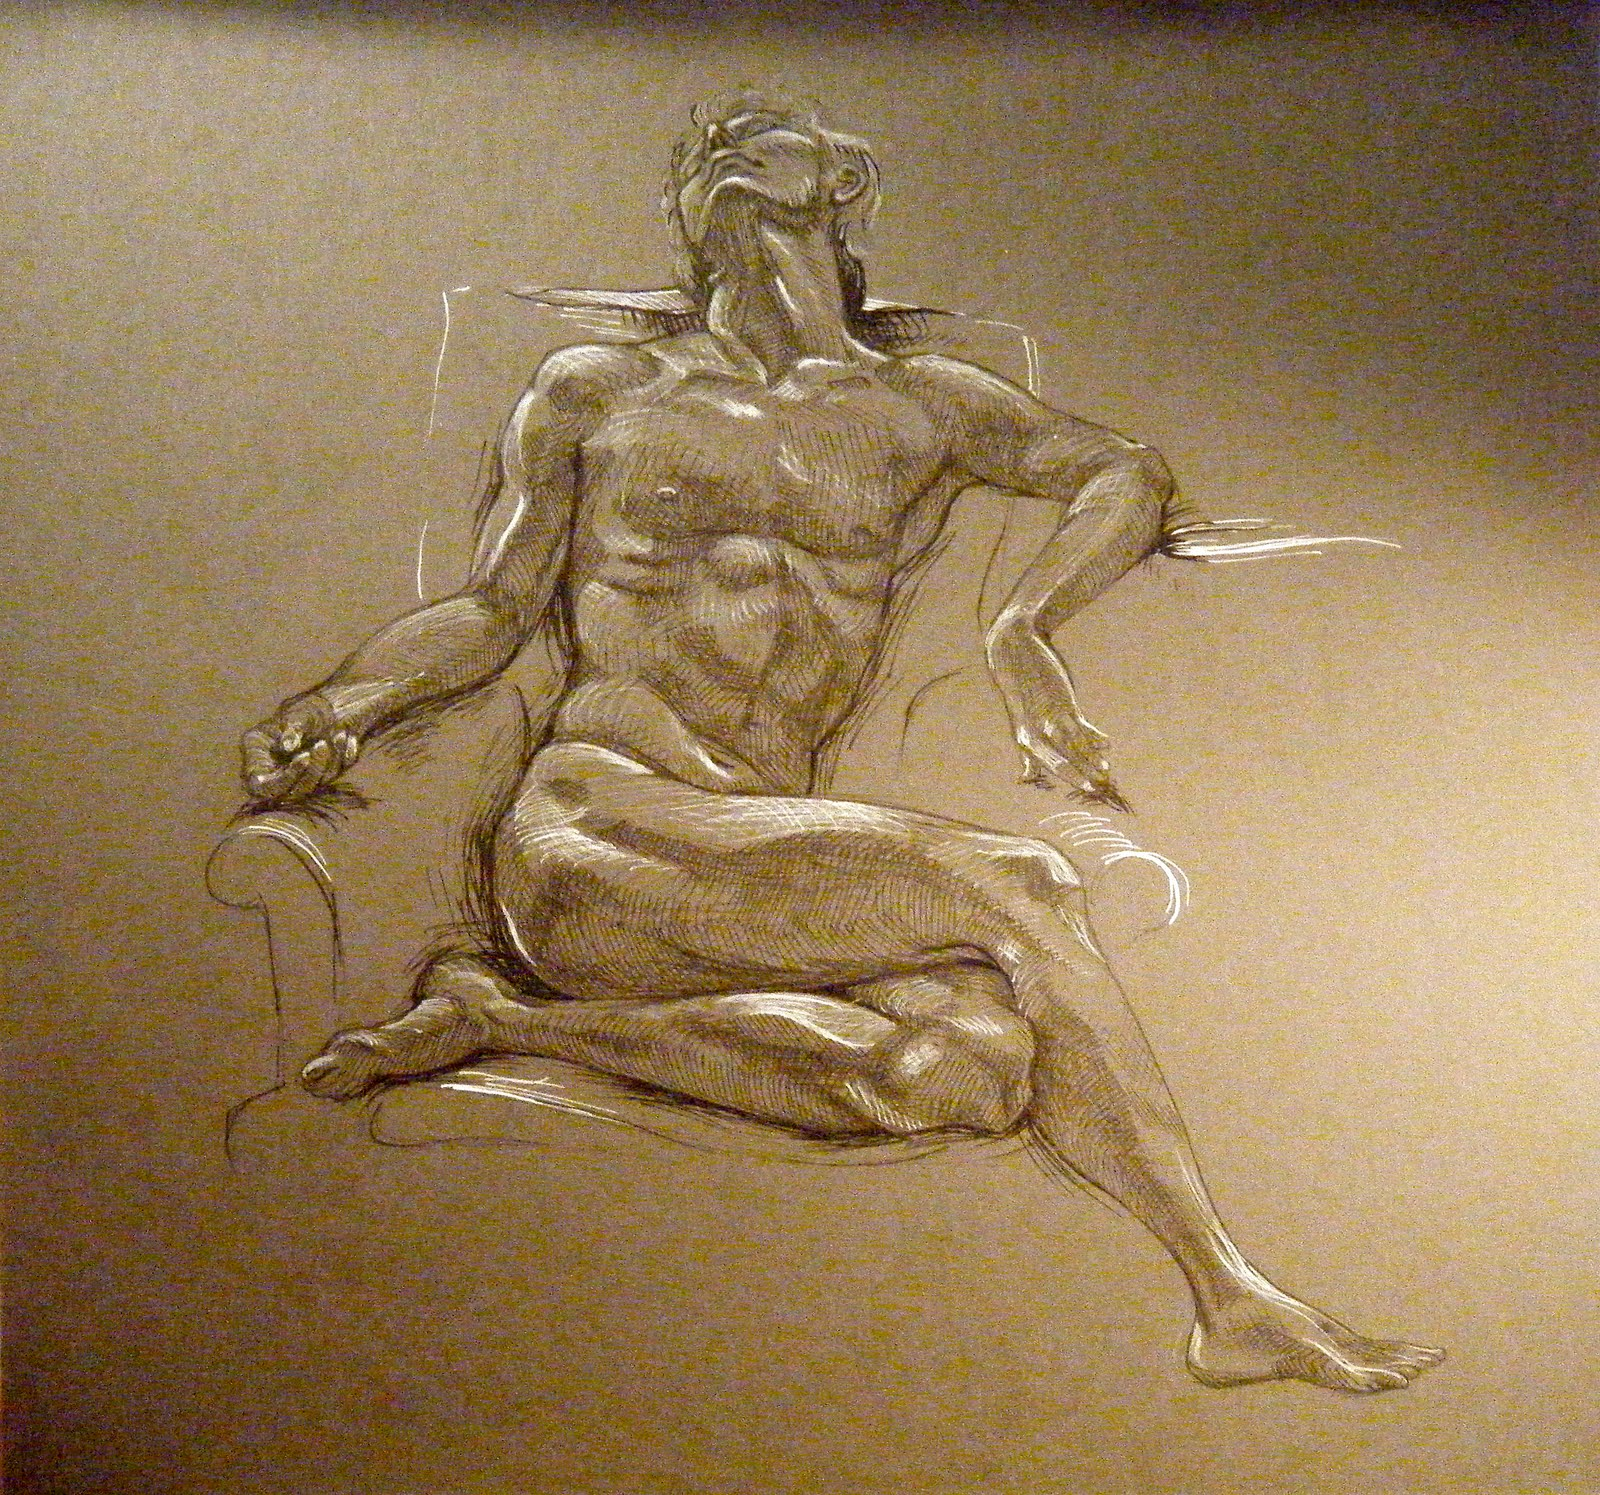 Paul Cadmus Figure Drawings